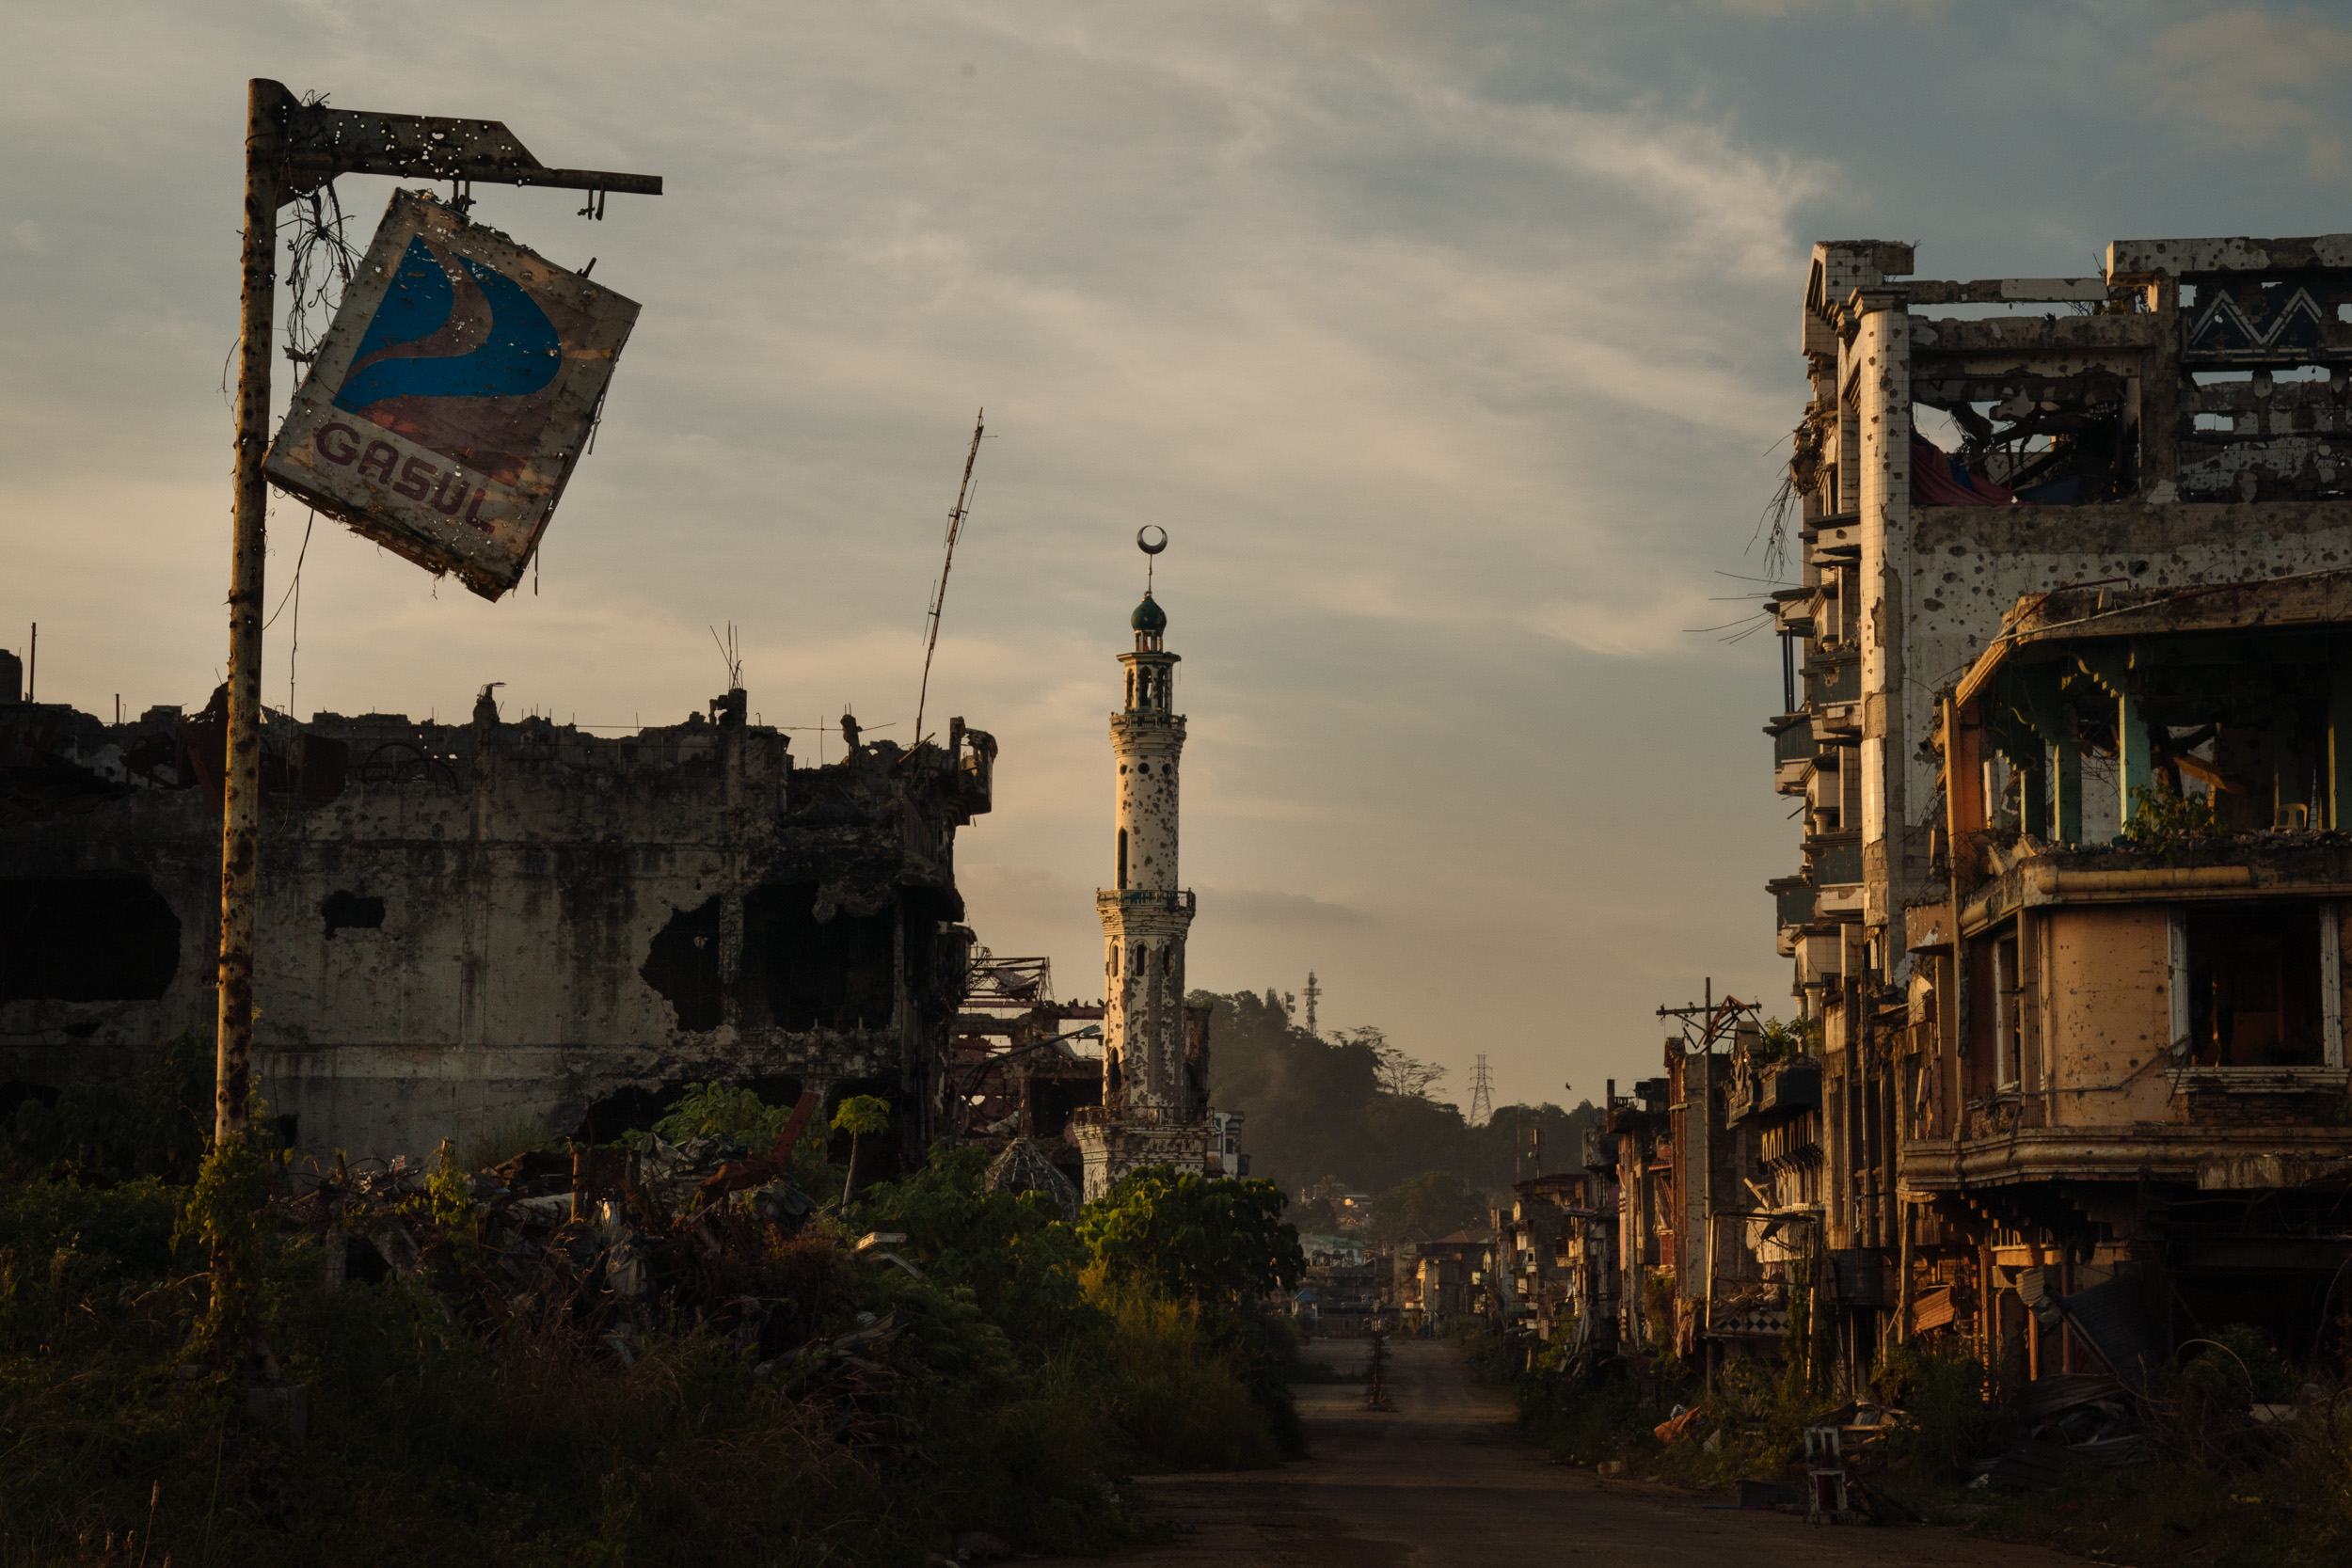 "The ruins of Marawi City are seen at sunset. It has been more than a year since the Philippine military declared the Muslim-majority city of Marawi ""liberated"" from ISIS-linked militants, but the city remains a ghost town, and locals are becoming more and more frustrated with the lack of government support. Marawi's youth, among the most vulnerable, are now faced with forming their identity amidst trauma and conflict."